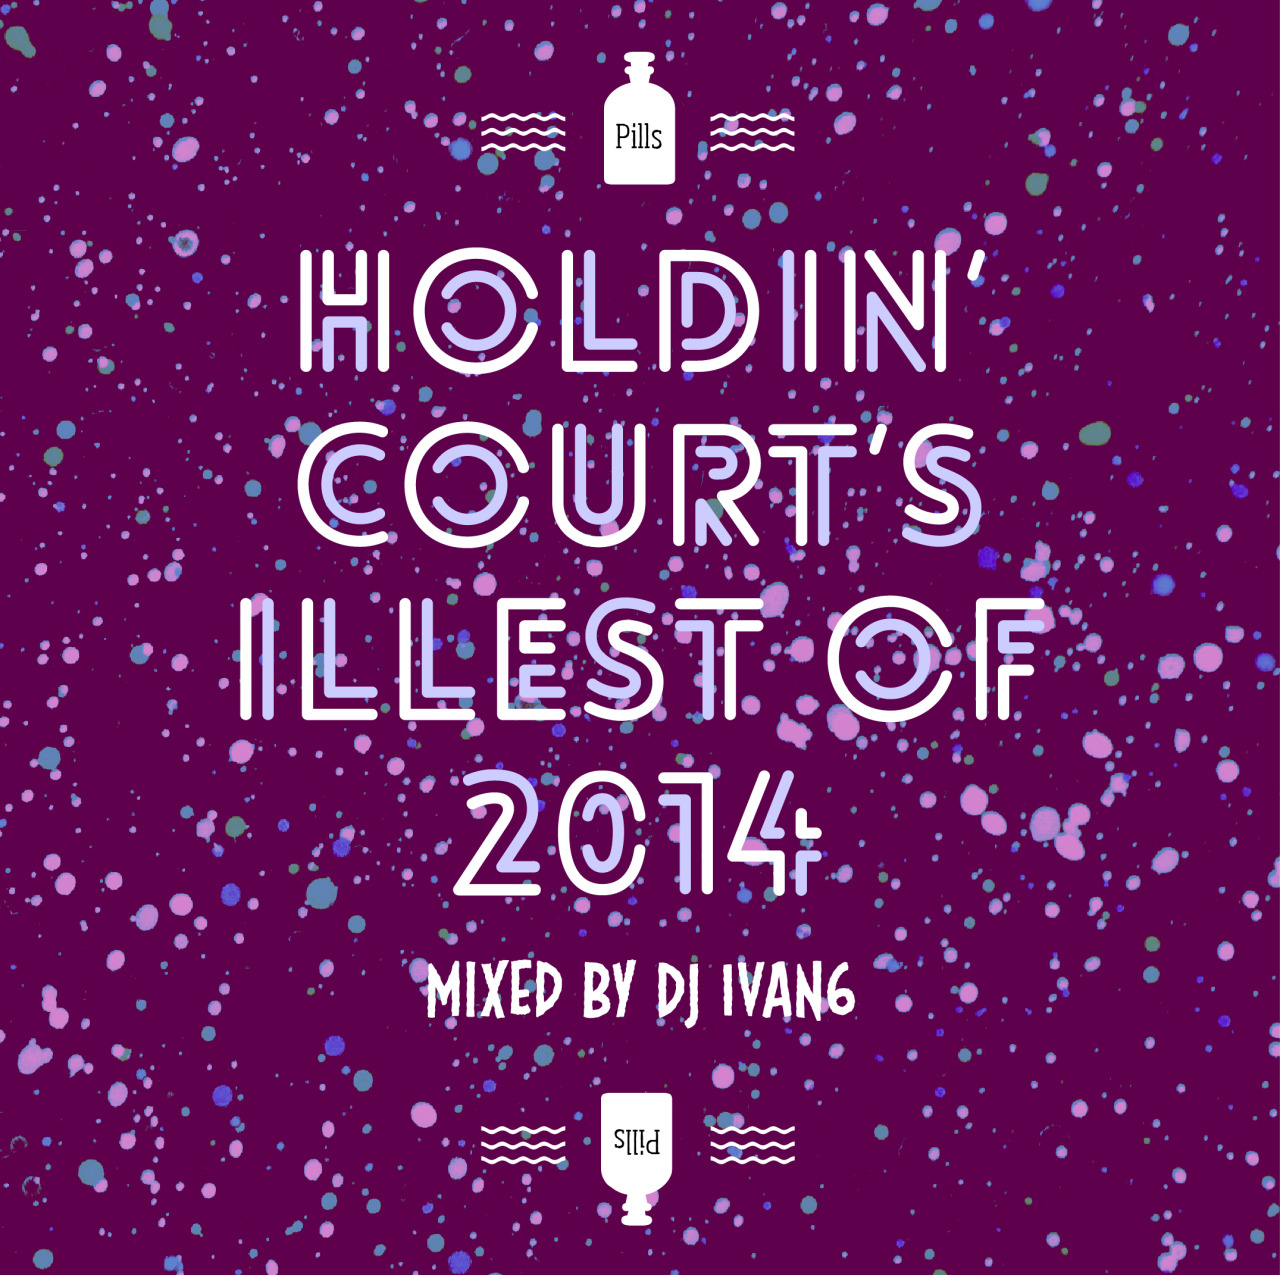 HOLDIN' COURT'S ILLEST OF 2014    Our pick of the illest from the UK in the year 2014. Mixed by Holdin' Court resident DJ Ivan6.    Featuring - Melanin 9. Jack Jetson. Benaddict. Dubbul O. Pro P. Luca Brazi. Cappo. Fabz. Black Josh. Archetype. Cutta Chase. The Bluntskins. Jehst. Mnsr Frites. Strange U. Fliptrix. JImmy James. GG Peney.     This is a free download, as always.   Here